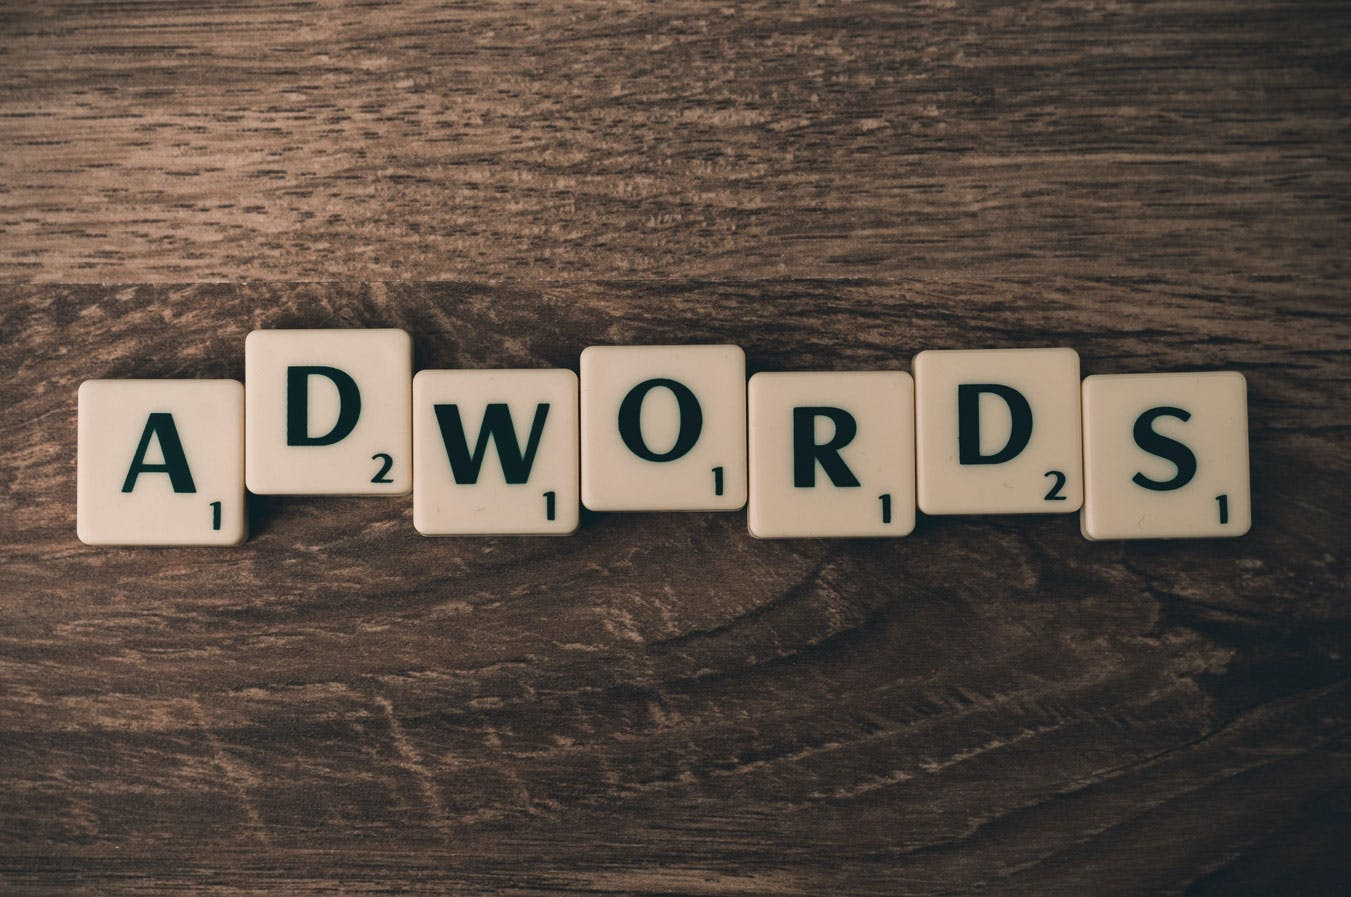 scrabble tiles spelling out adwords